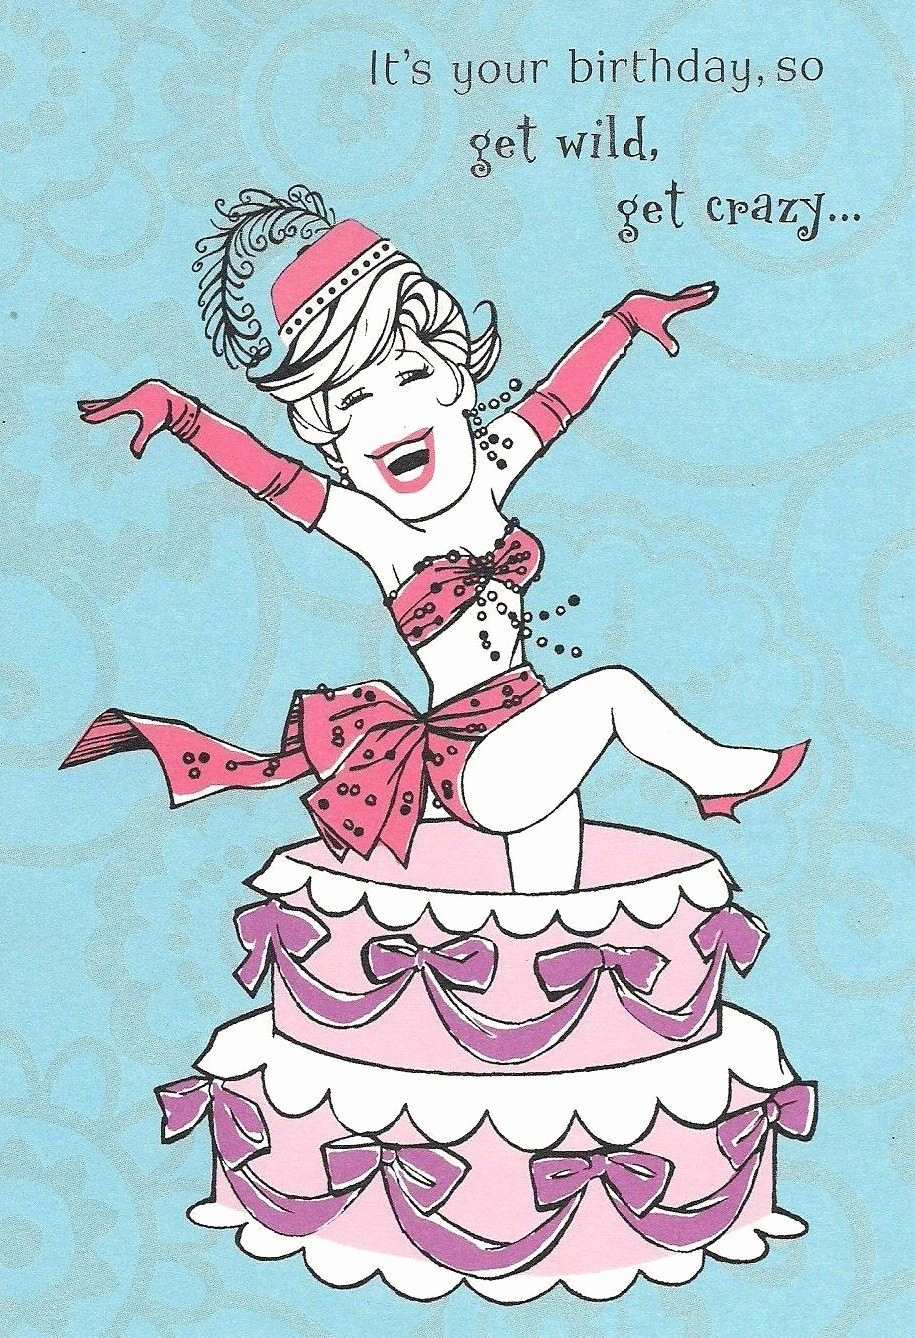 happy birthday crazy girl ; happy-birthday-quotes-daughter-inspirational-y-lady-show-girl-pops-out-of-cake-birthday-greeting-card-hallmark-of-happy-birthday-quotes-daughter